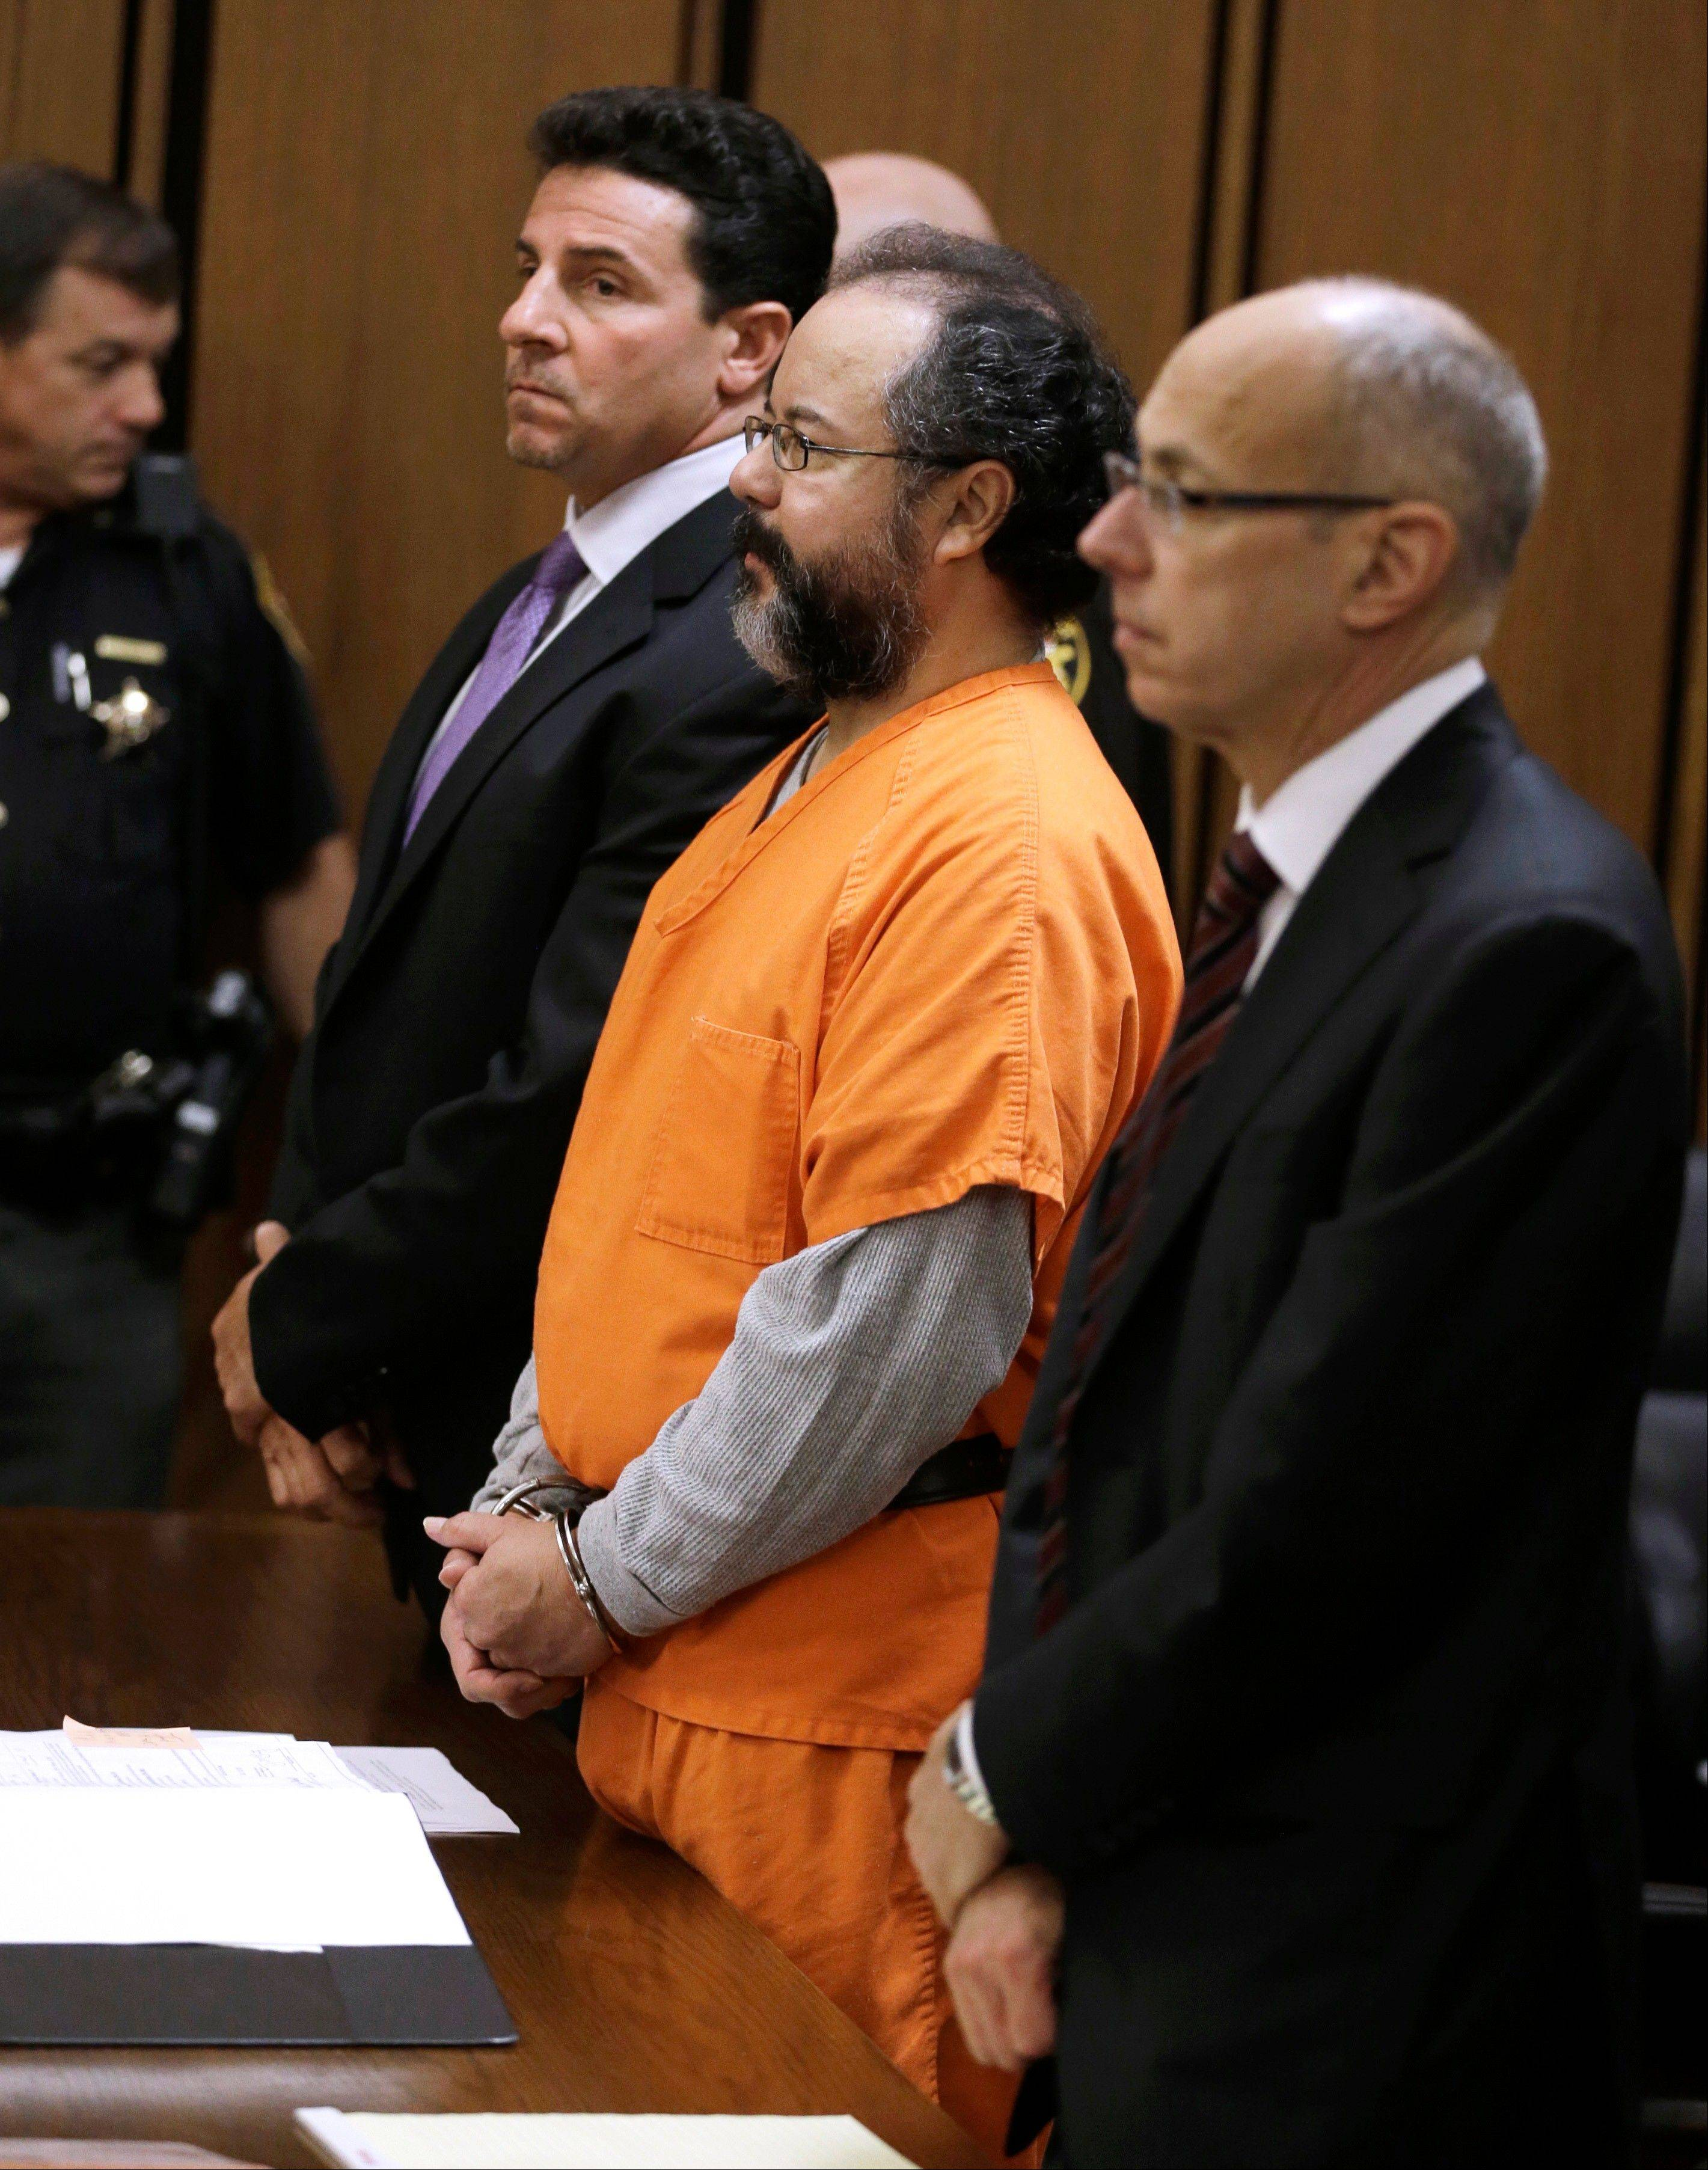 Ariel Castro, center, and defense attorneys Craig Weintraub, left, and Jaye Schlachet, stand in the courtroom Friday in Cleveland. Castro, who imprisoned three women in his home, pleaded guilty Friday to 937 counts in a deal to avoid the death penalty. In exchange, prosecutors recommended Castro be sentenced to life without parole plus 1,000 years.